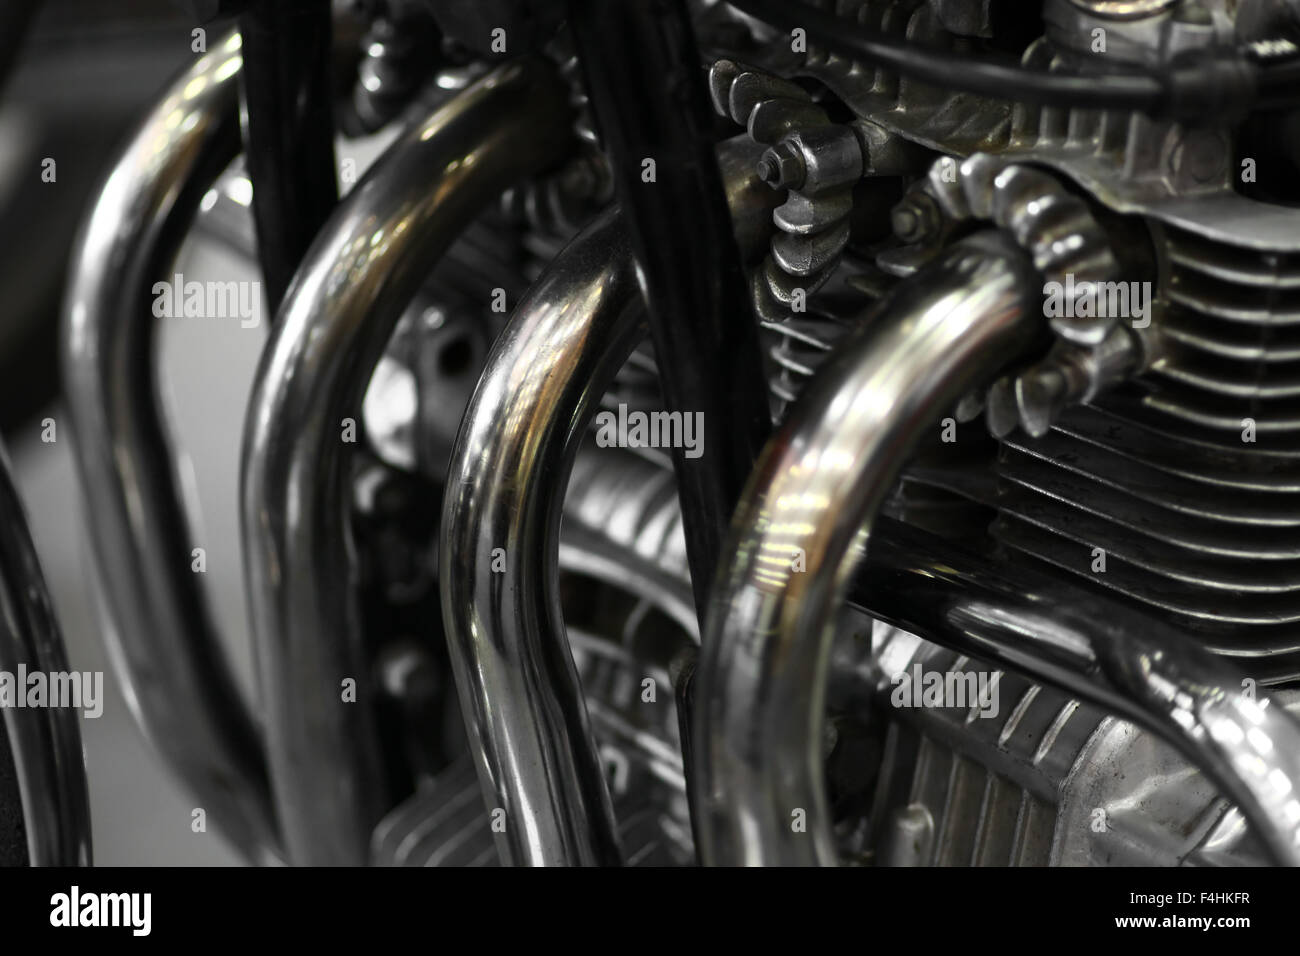 Detail of a motorcycle exhaust pipes and cylinders.. Stock Photo